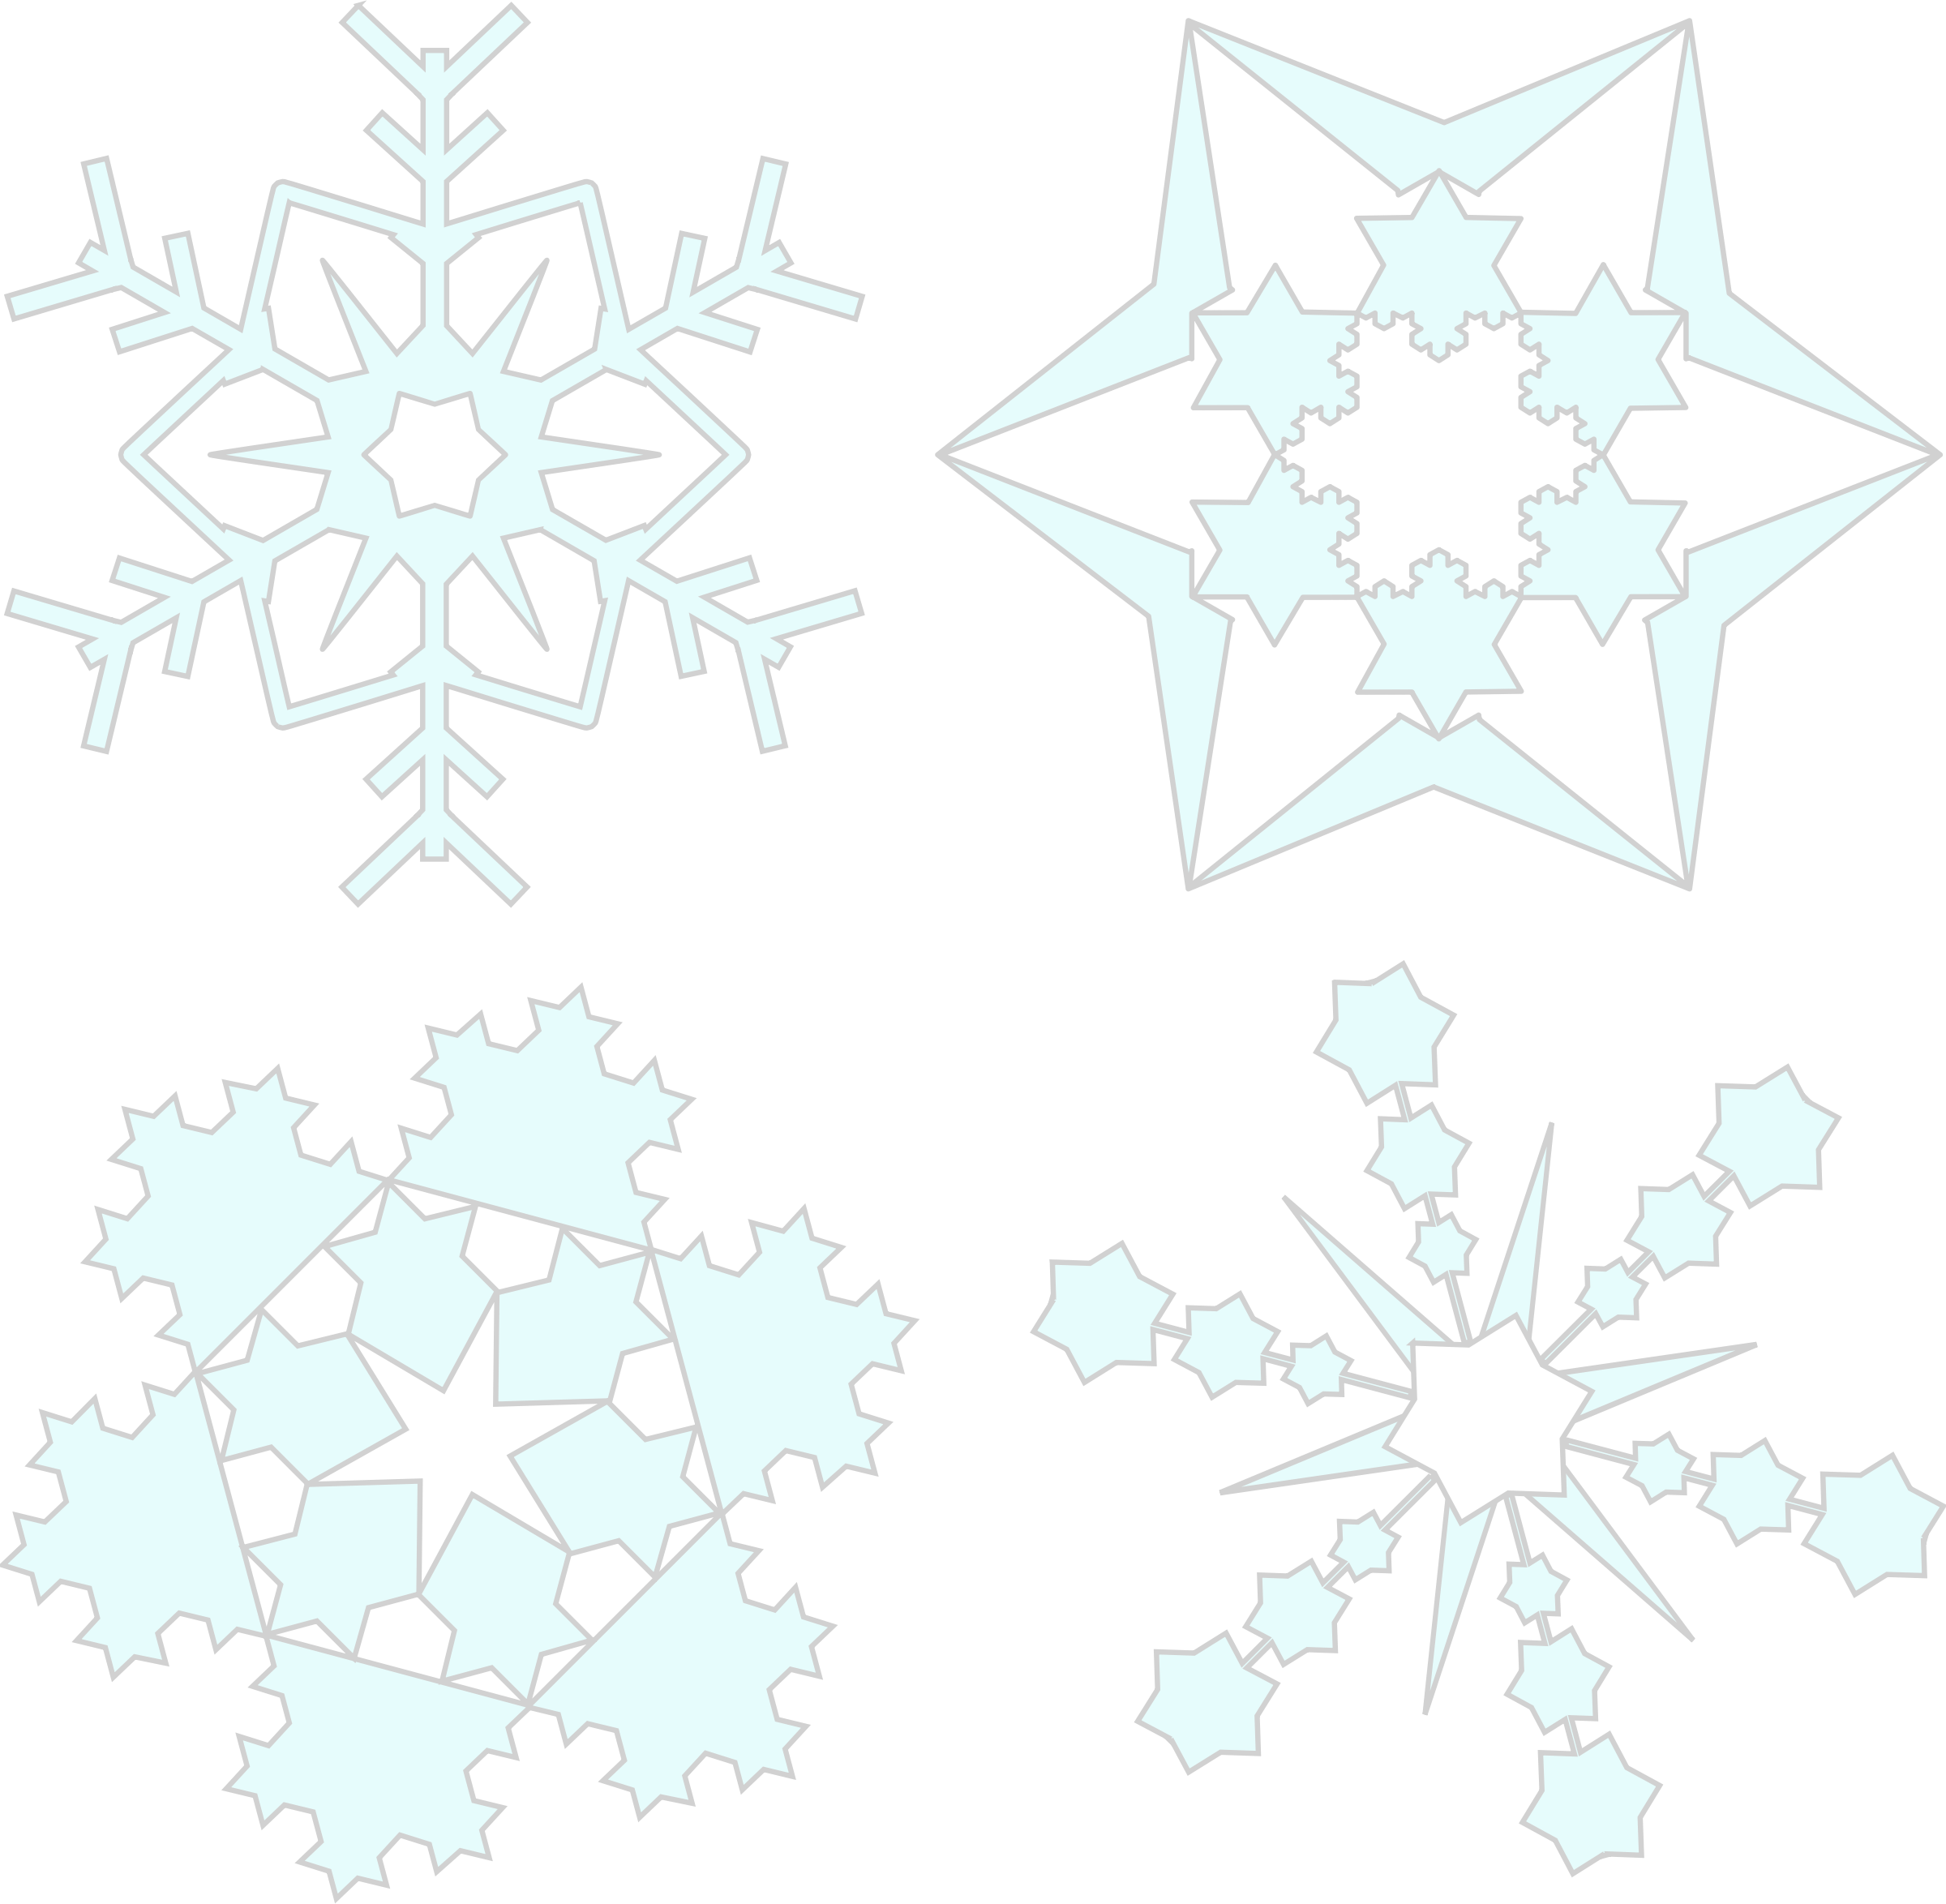 Floating snowflake clipart vector transparent library Lesson Plans and Activities | Backyard Learning vector transparent library